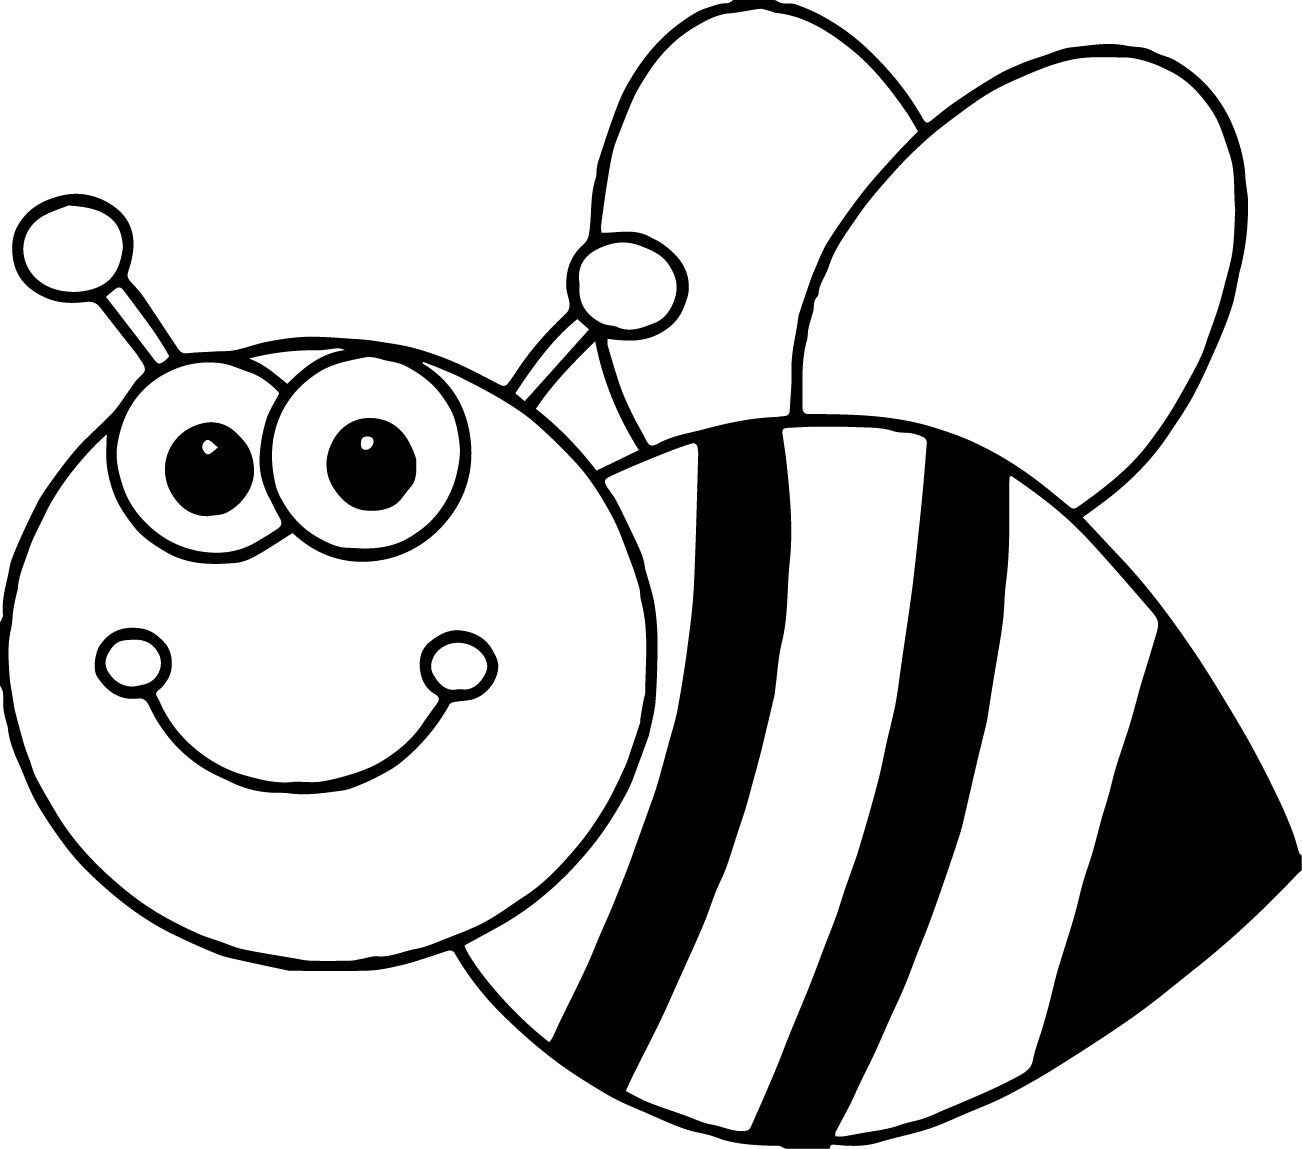 Bumblebee Coloring Pages for Adults